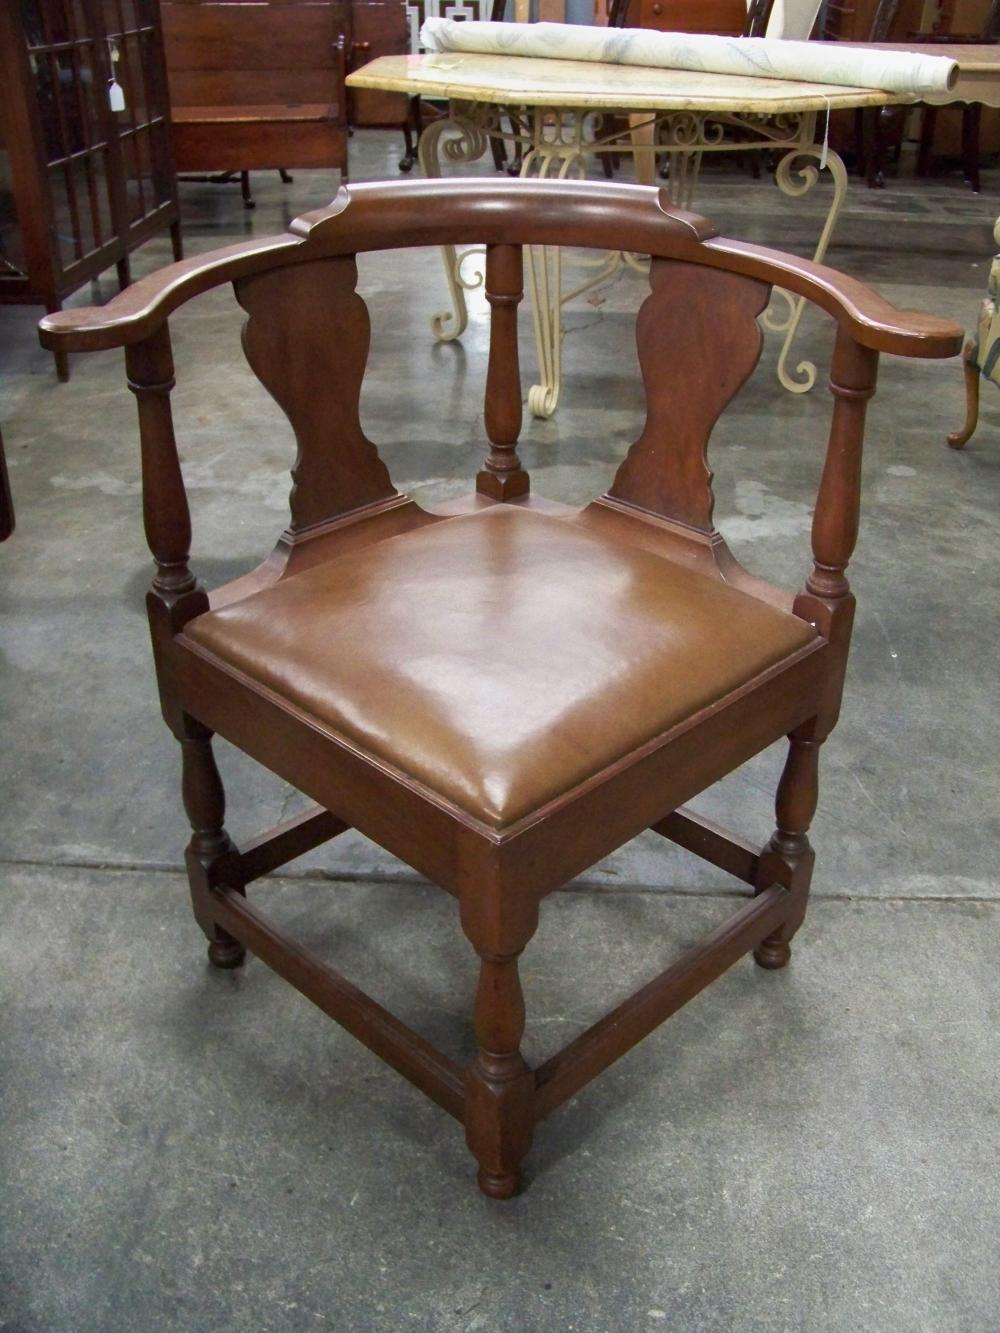 Vintage Mahogany Corner Chair with Leather Seat